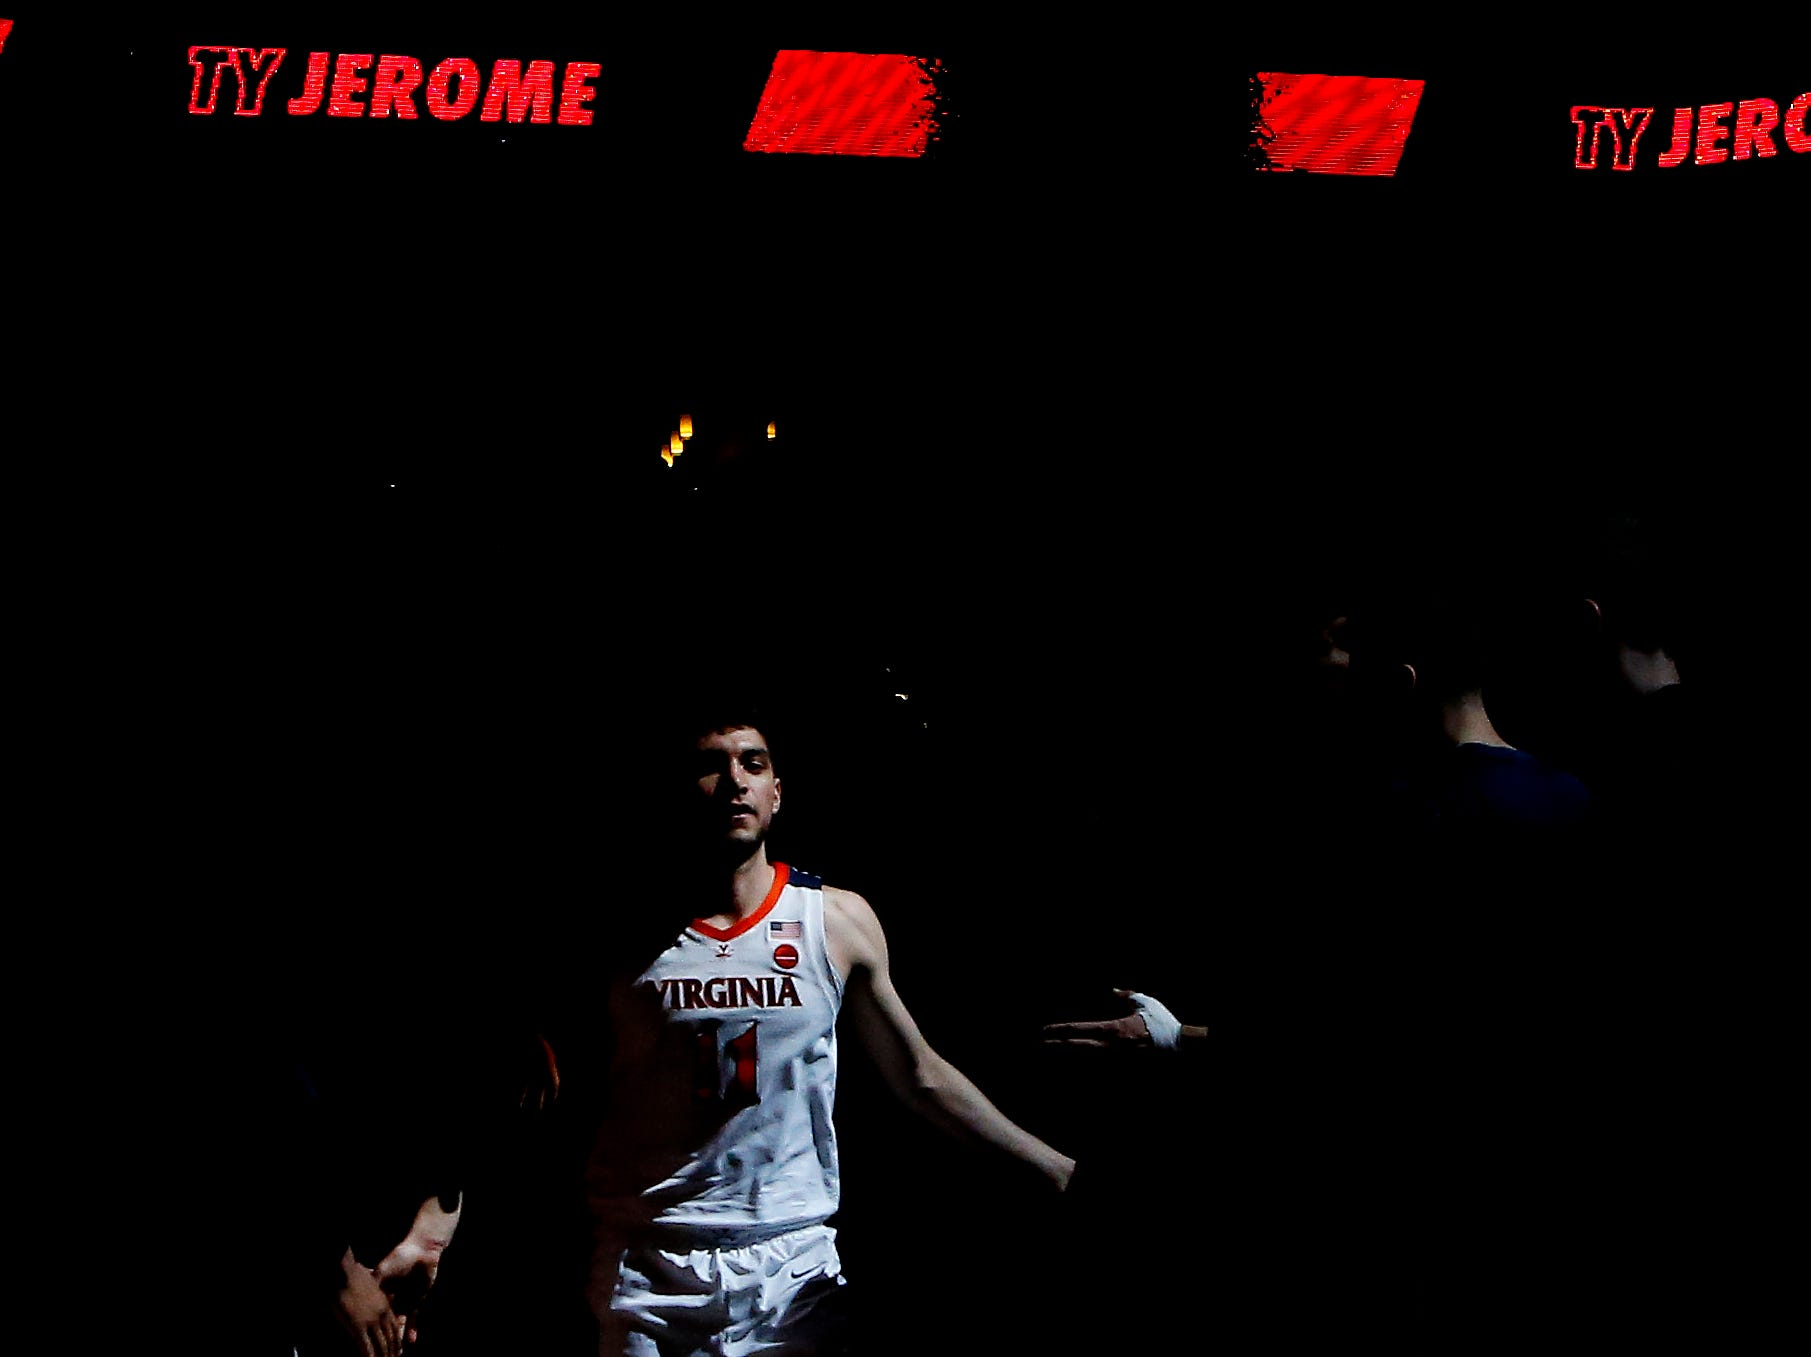 Jan 5, 2019; Charlottesville, VA, USA; Virginia Cavaliers guard Ty Jerome (11) is introduced prior to the Cavaliers' game against the Florida State Seminoles at John Paul Jones Arena. Mandatory Credit: Geoff Burke-USA TODAY Sports